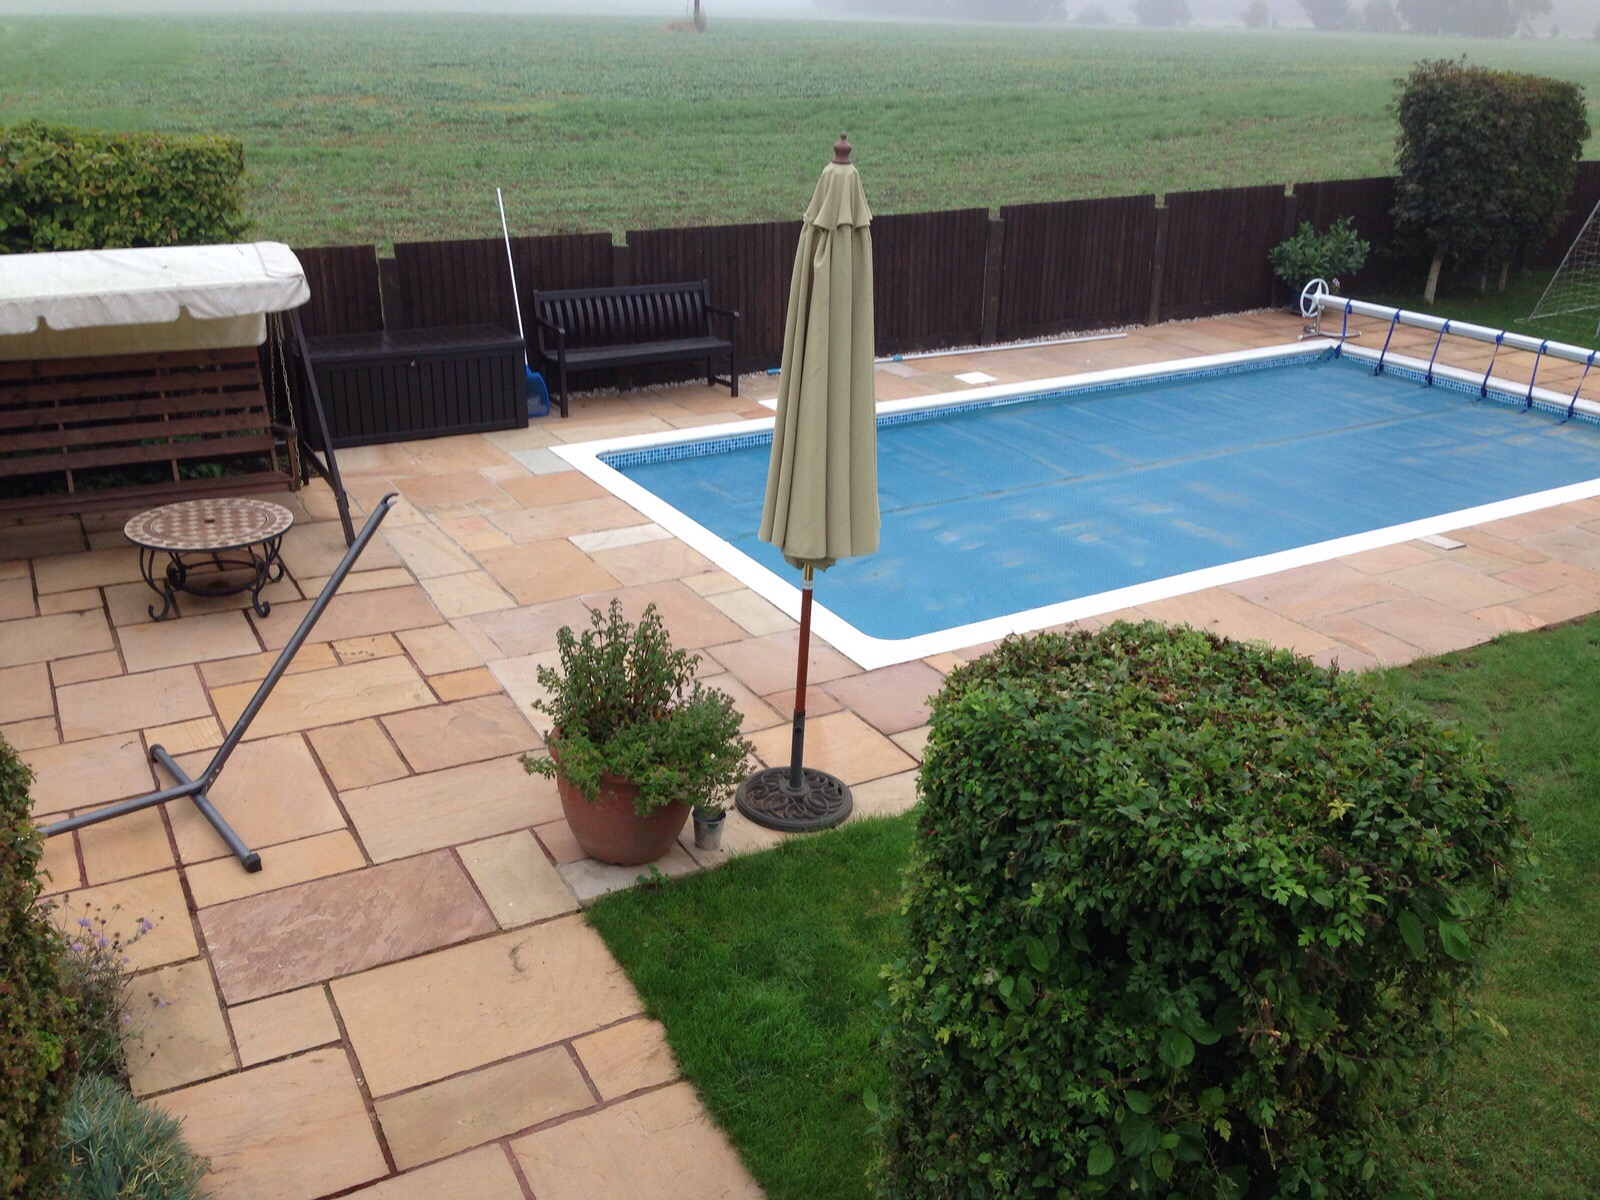 Natural sandstone around pool